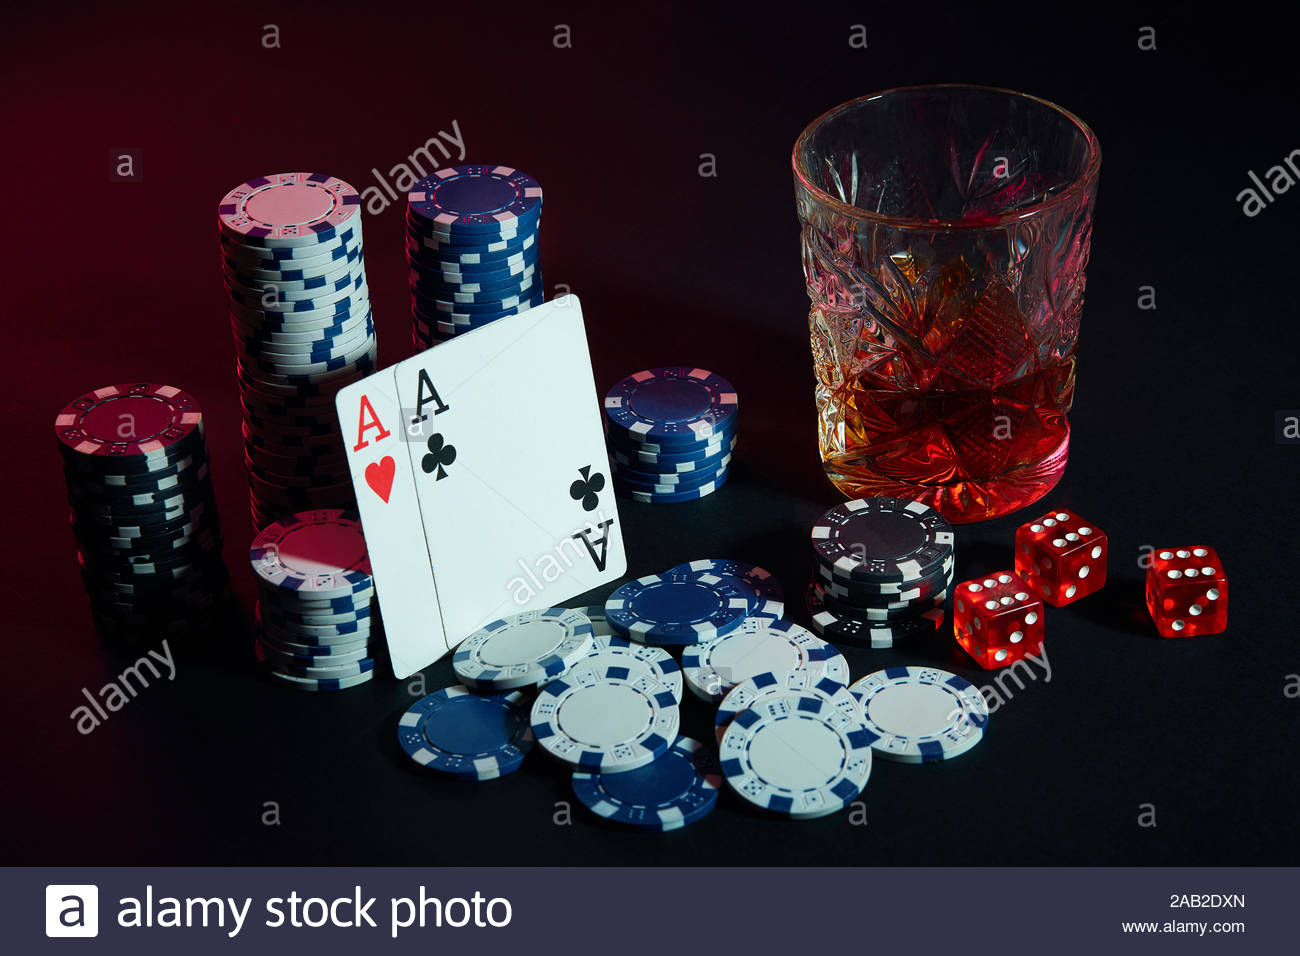 Casino – Are You Ready For a great Thing?